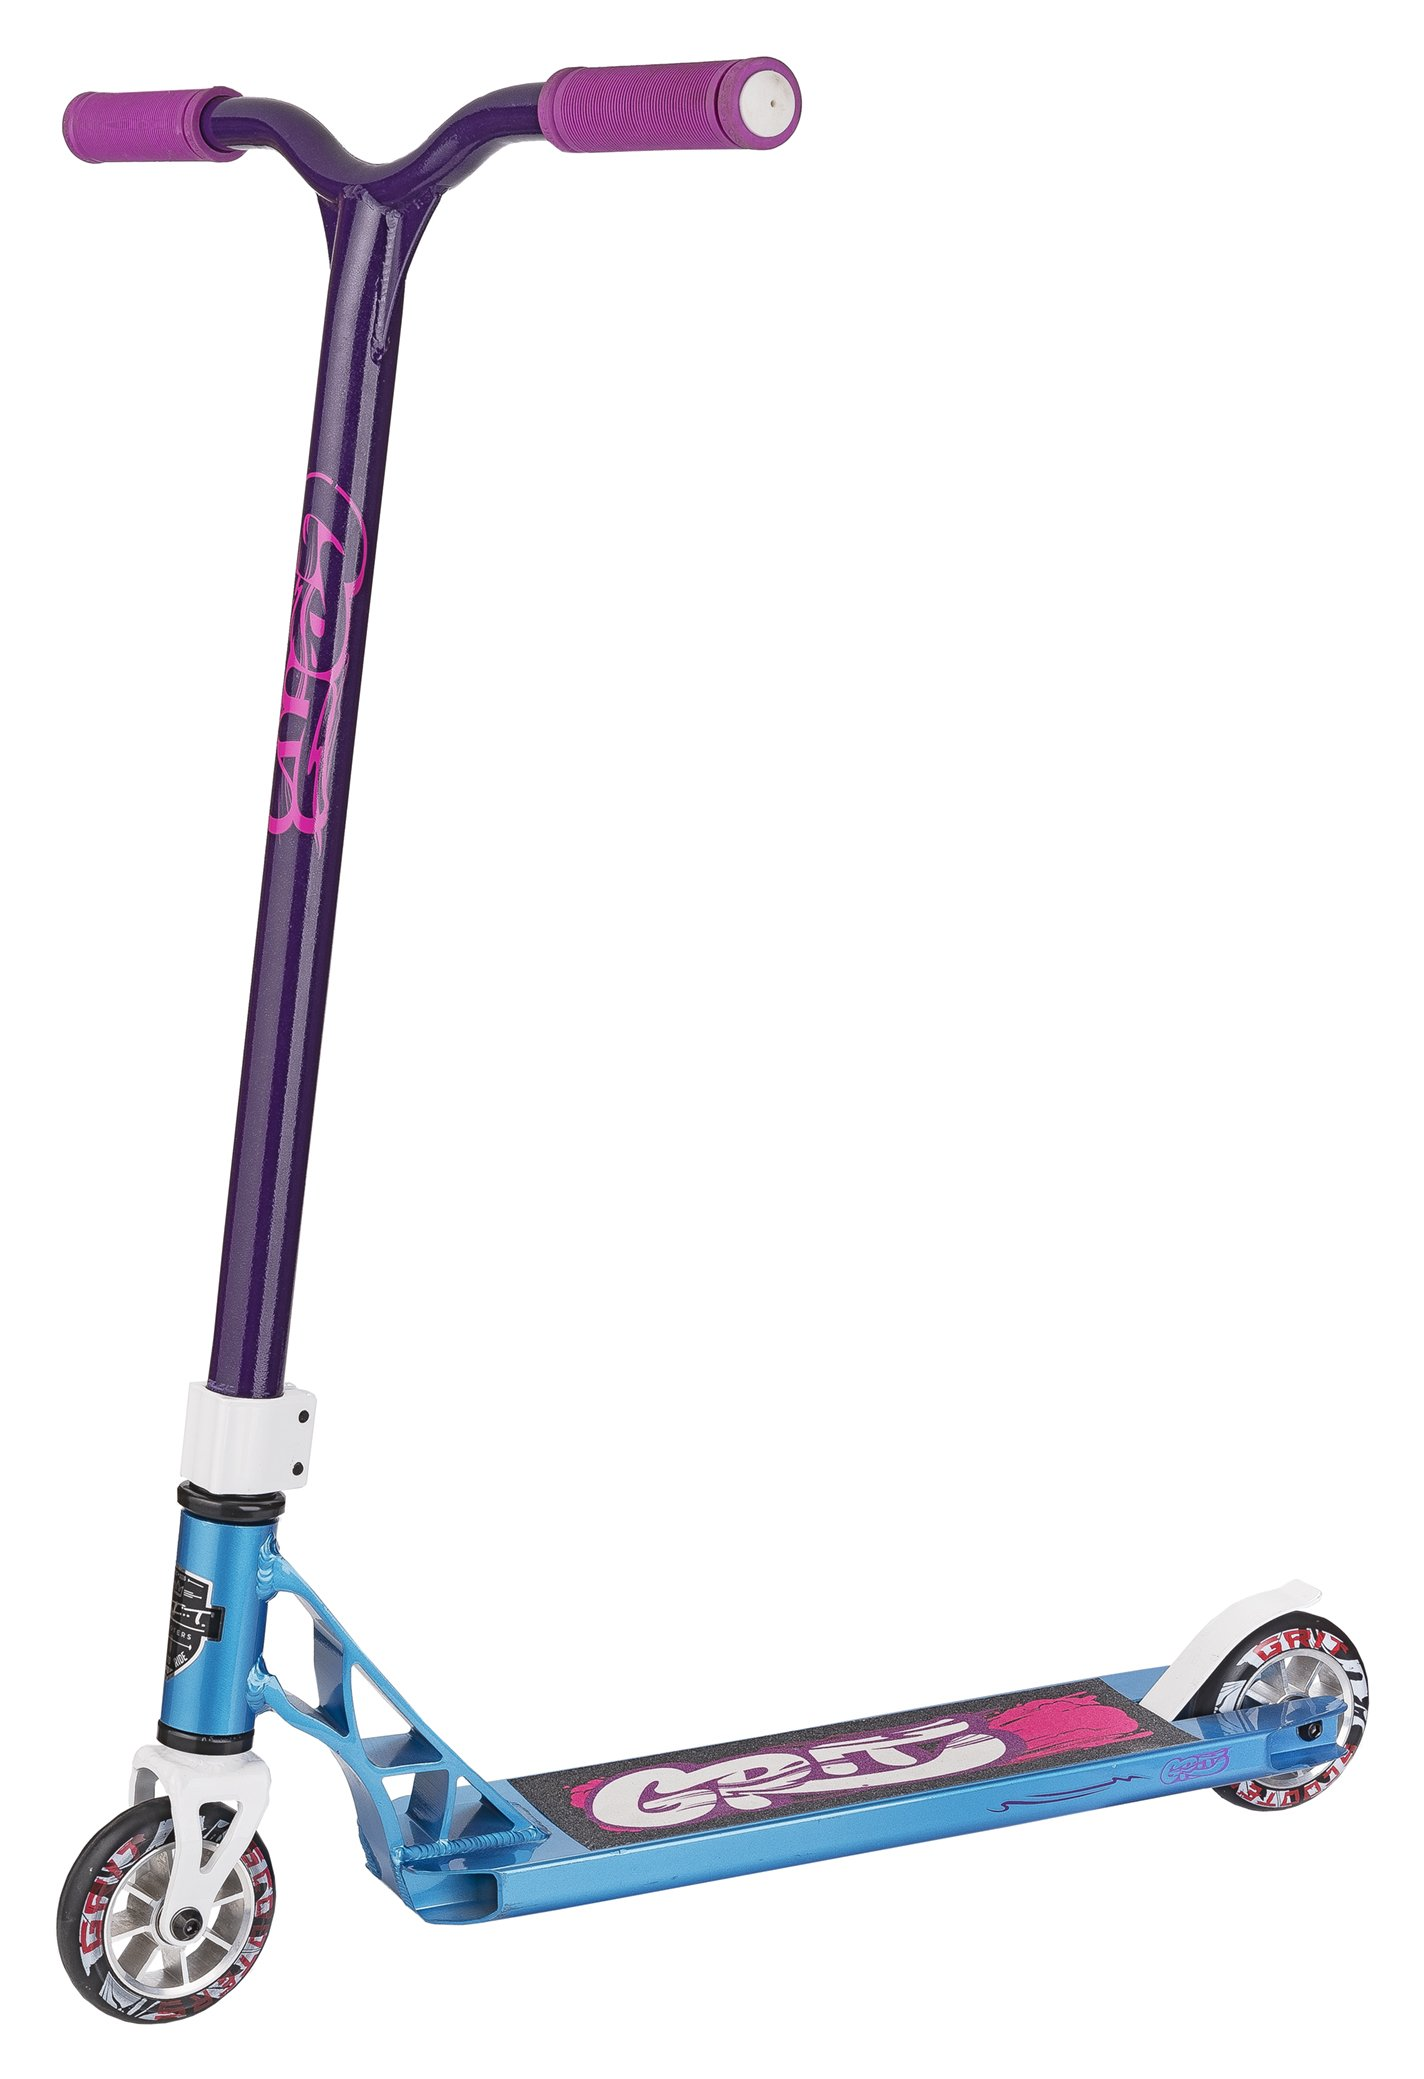 Grit Fluxx Pro Scooter (Satin Iced Blue/Purple) by Grit Scooters